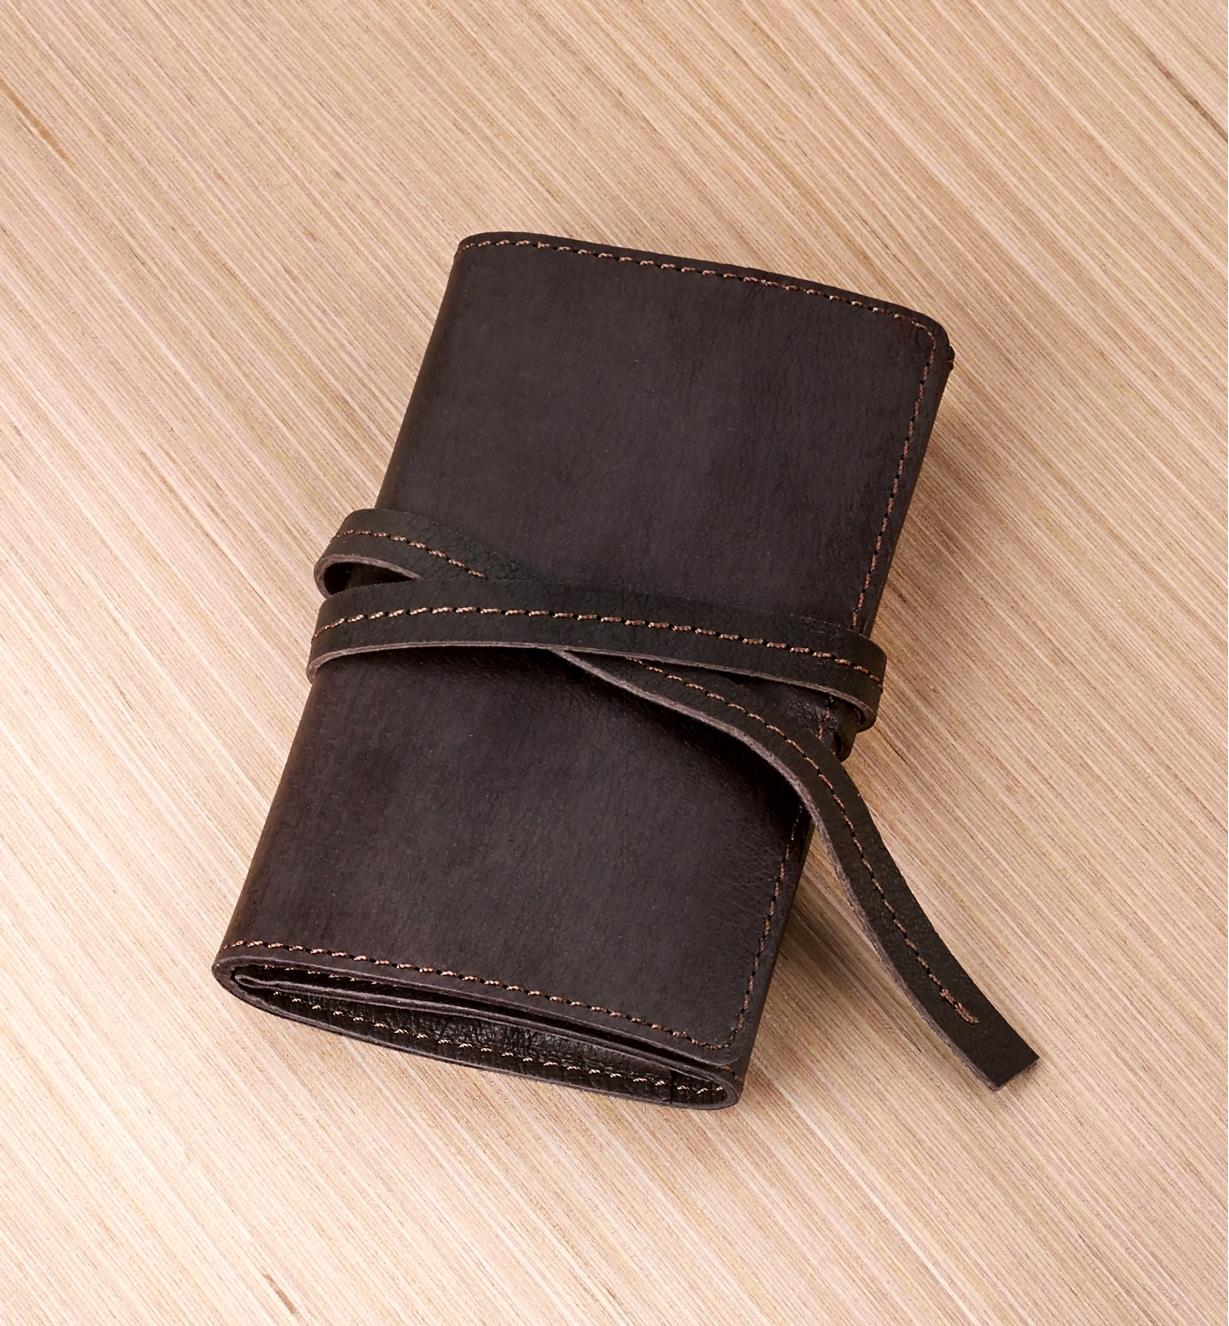 A leather cord wallet on a tabletop, cinched closed with its leather tie